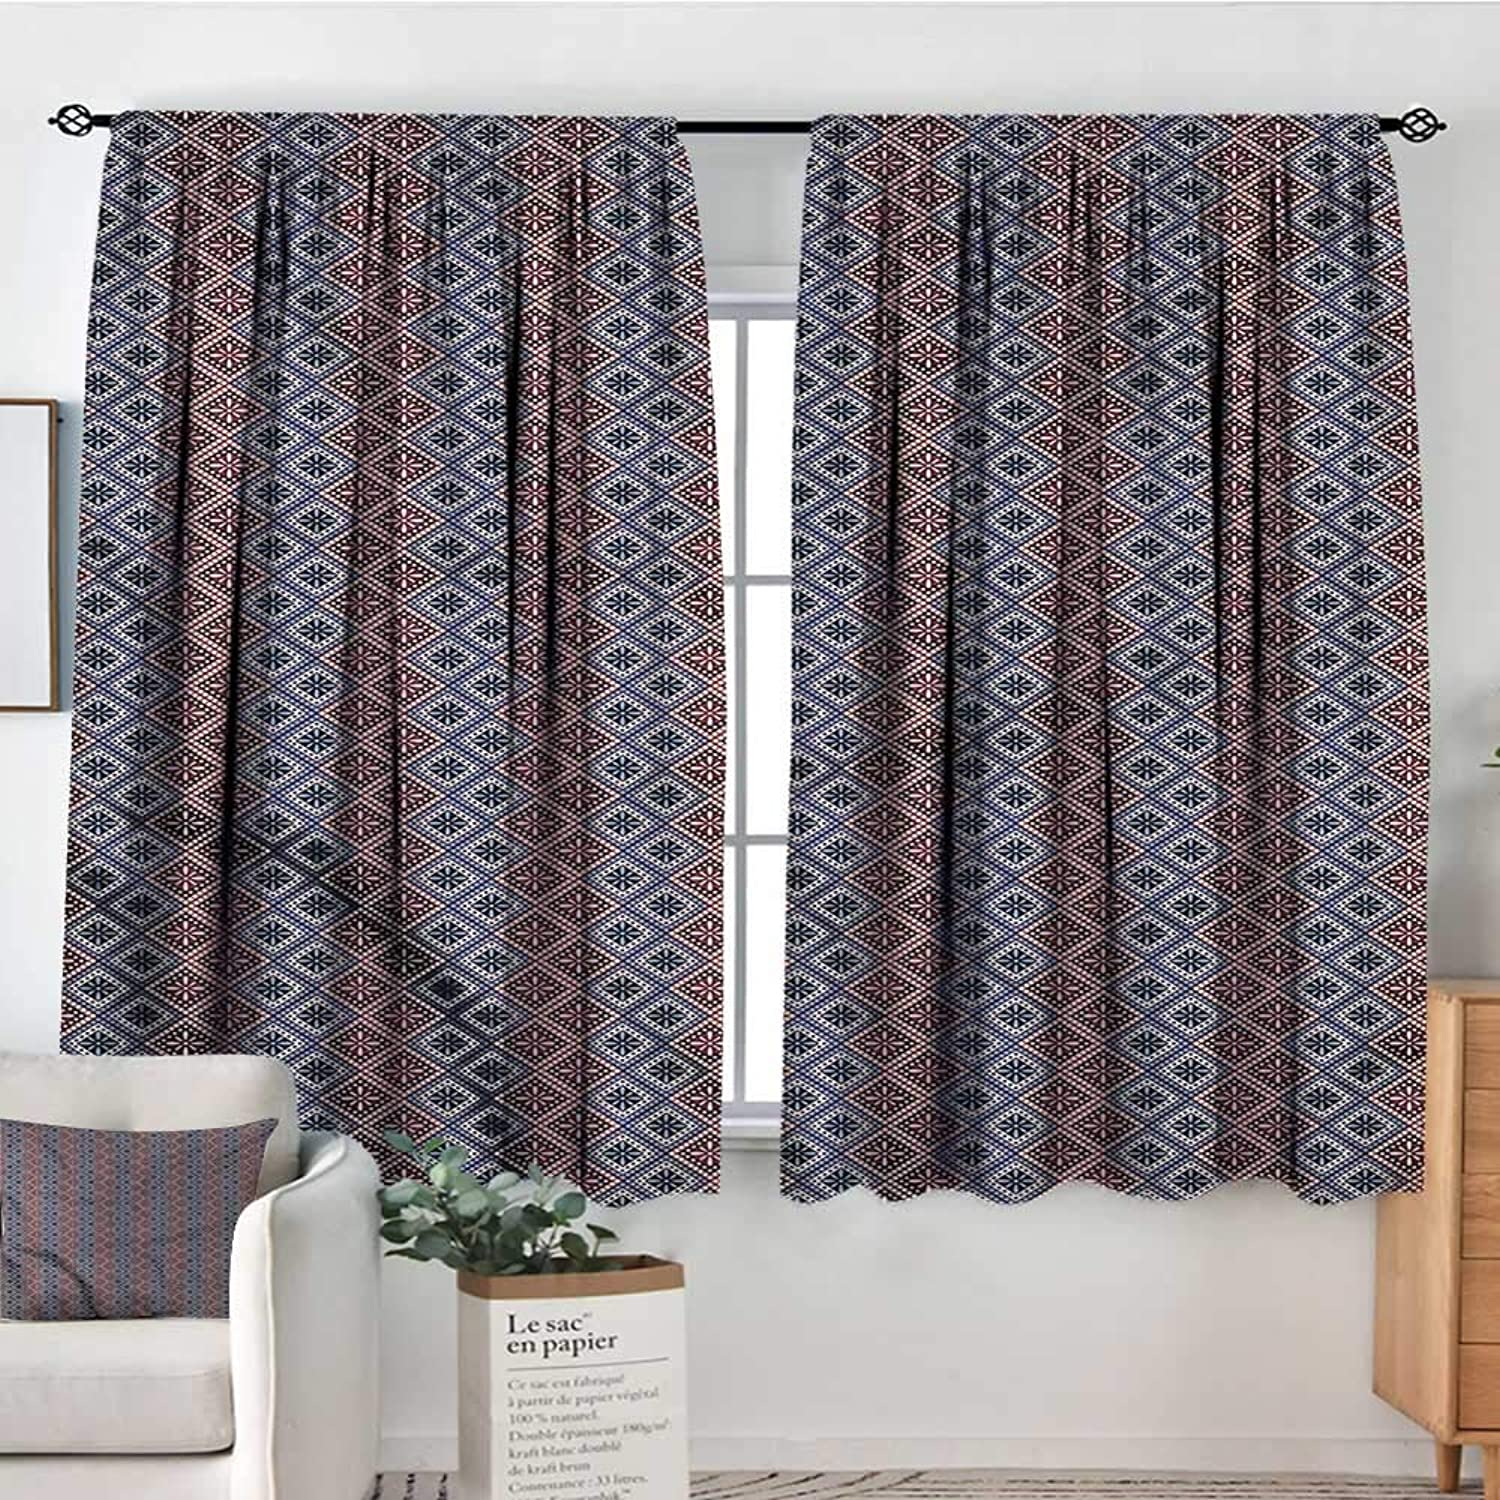 RenteriaDecor Ethnic,Backout Curtain Set Checkered Floral Dotted 42 X63  Print Curtains for Toddes Iving Room